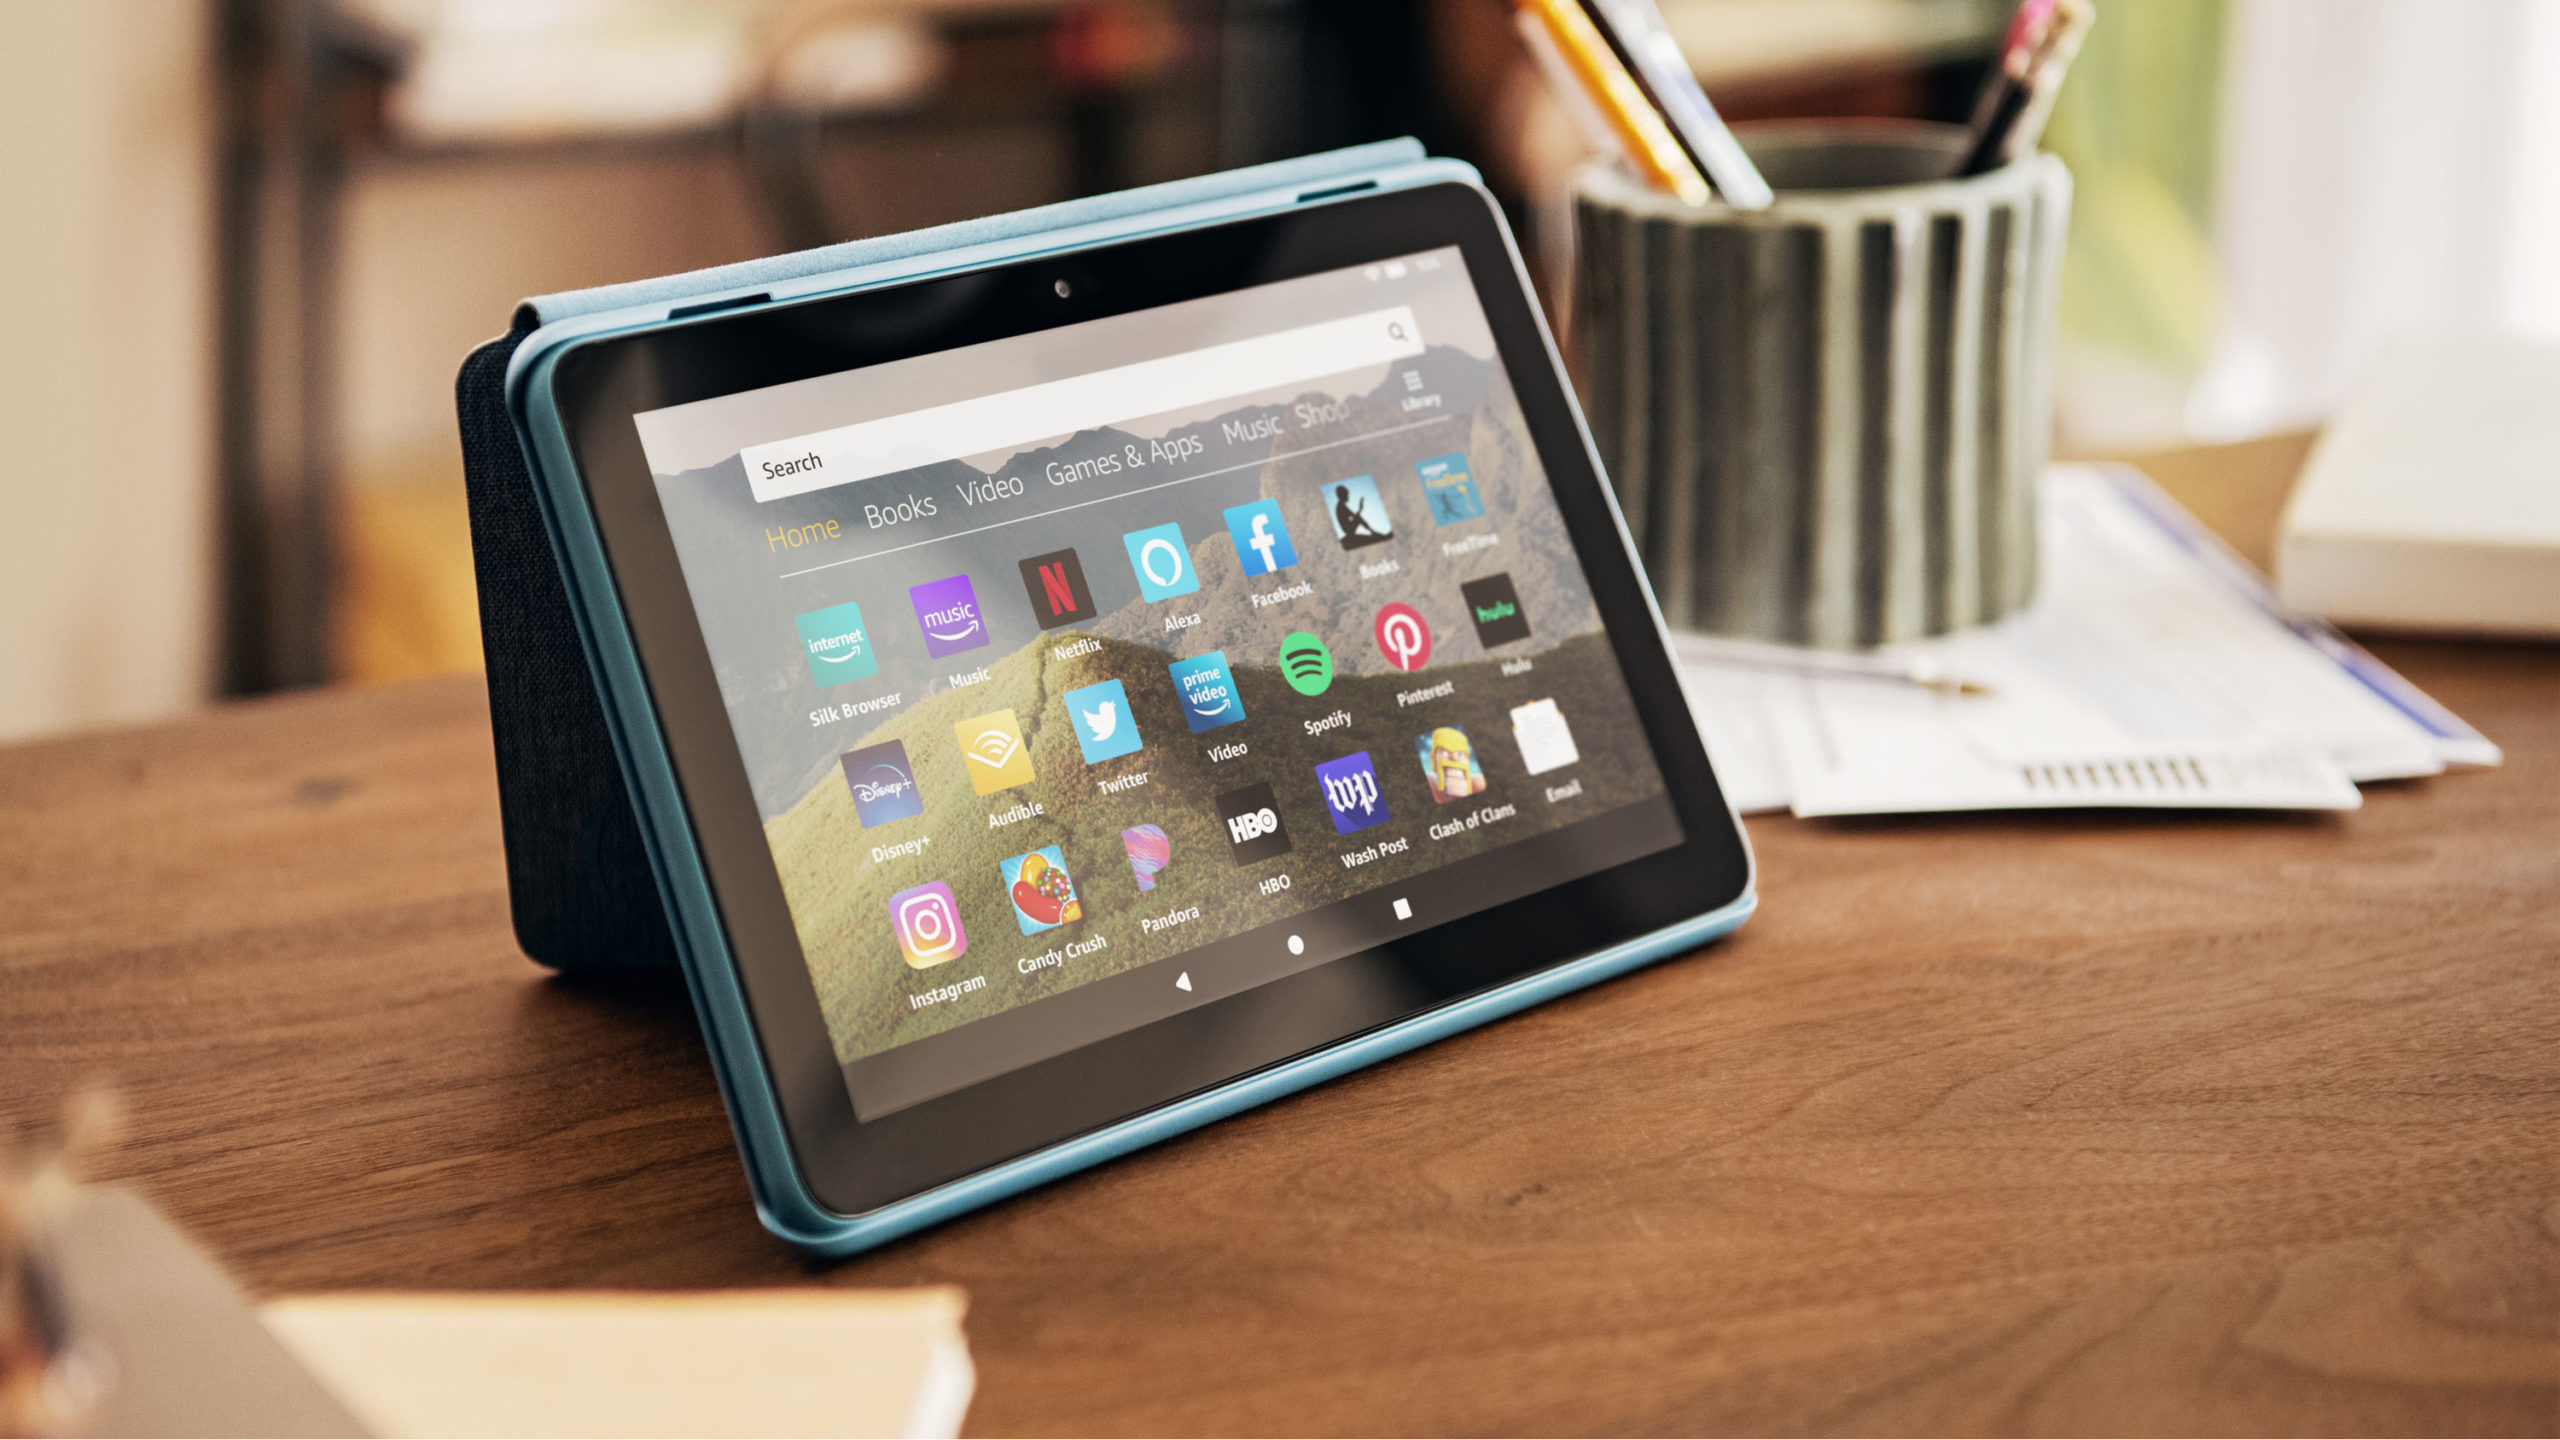 Amazon launches a new 8-inch tablet with Plus and Kids versions